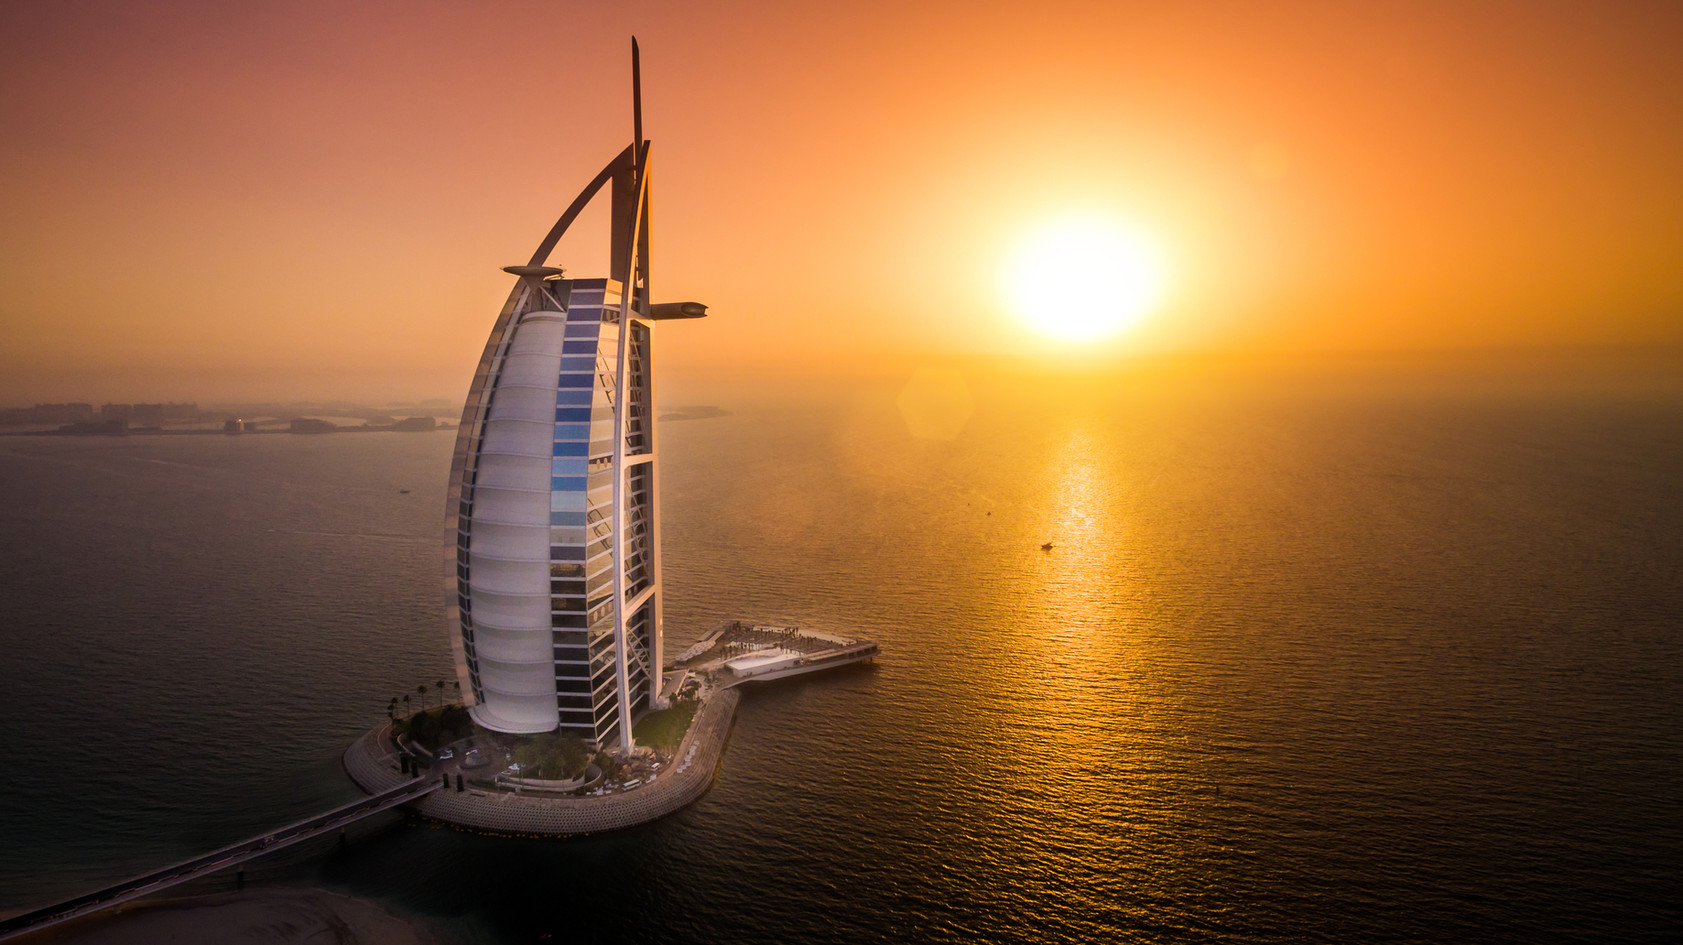 BURJ AL ARAB Luxury hotel with posh dining & beach